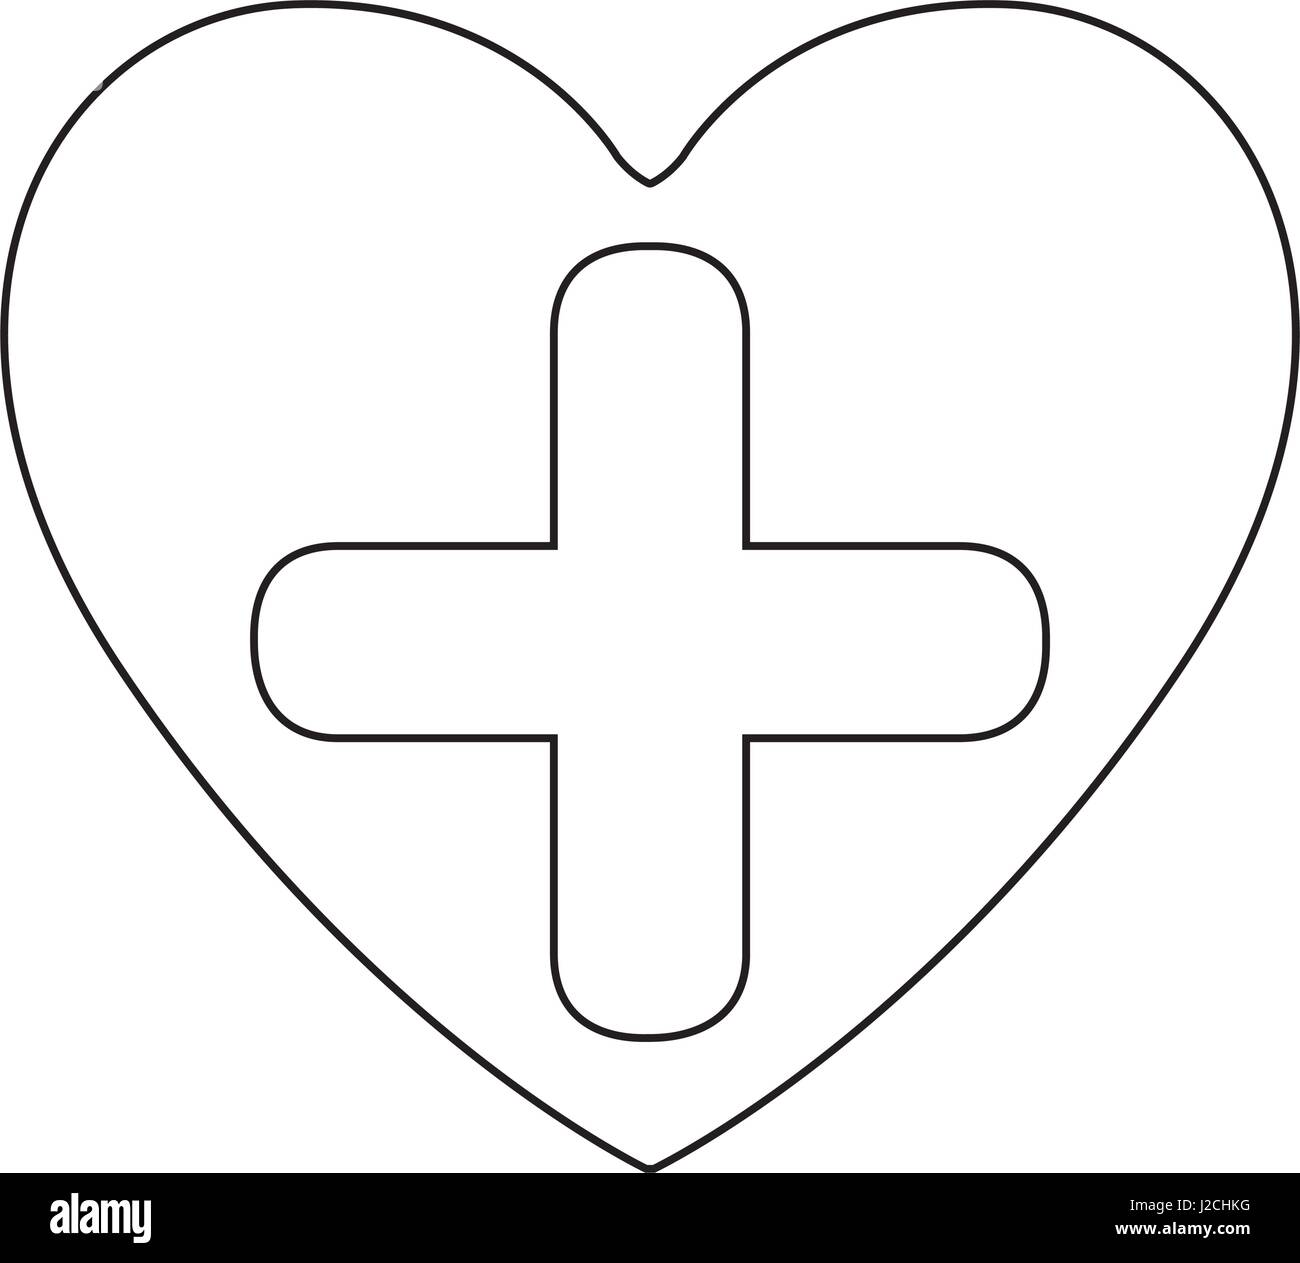 Silhouette Heart Health With Cross Form